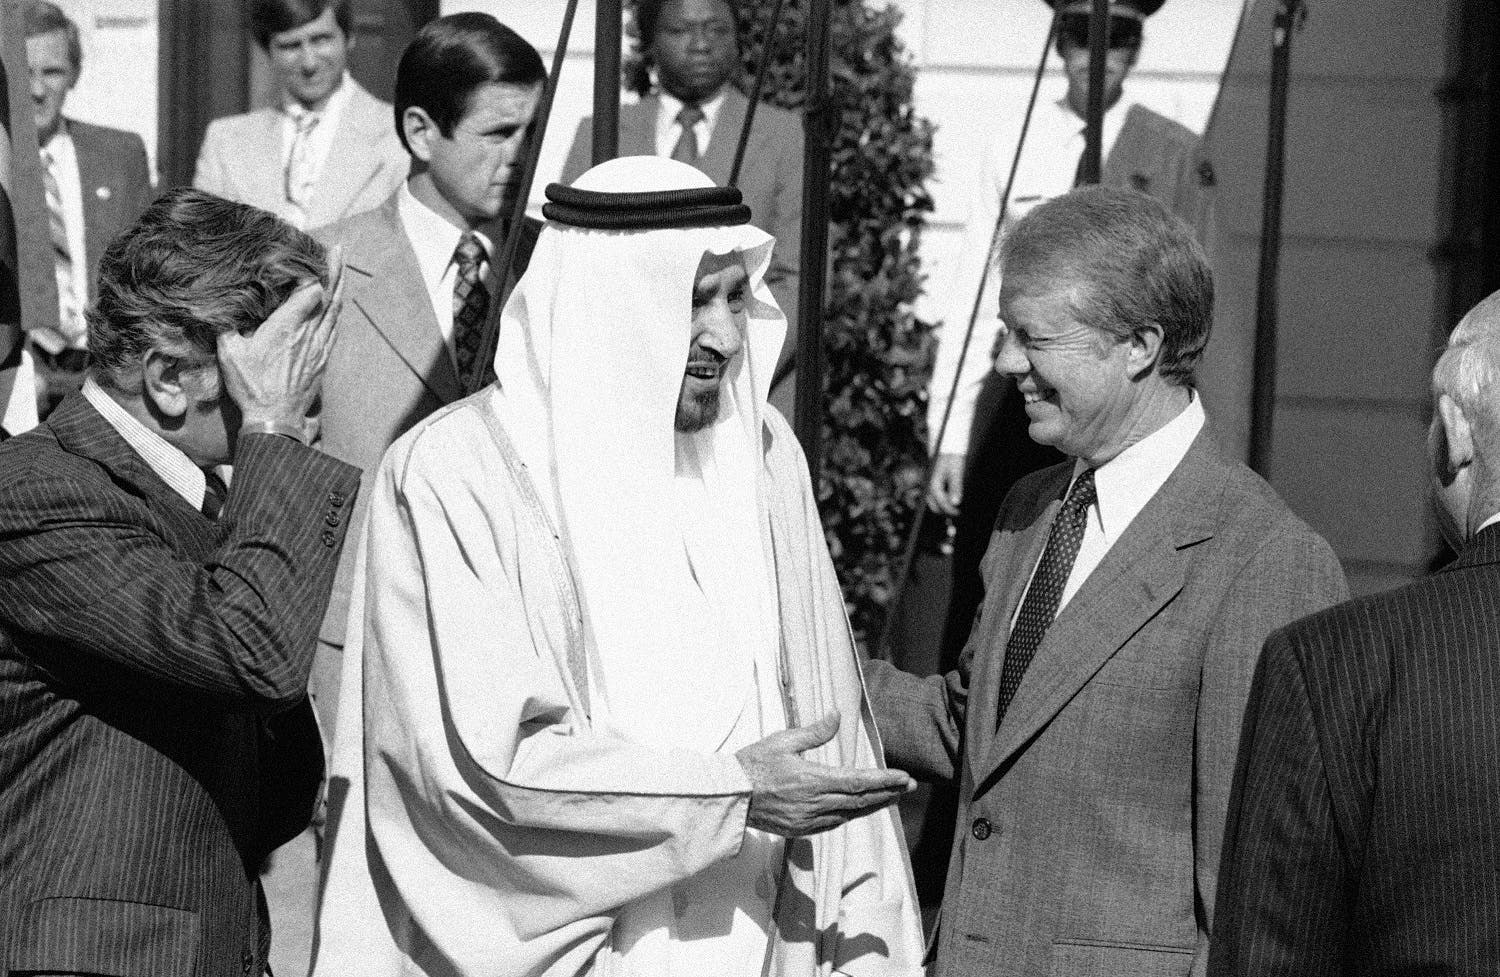 King Khalid of Saudi Arabia is greeted by President Jimmy Carter at the White House in Washington, Oct. 27, 1978 (File Photo: AP)